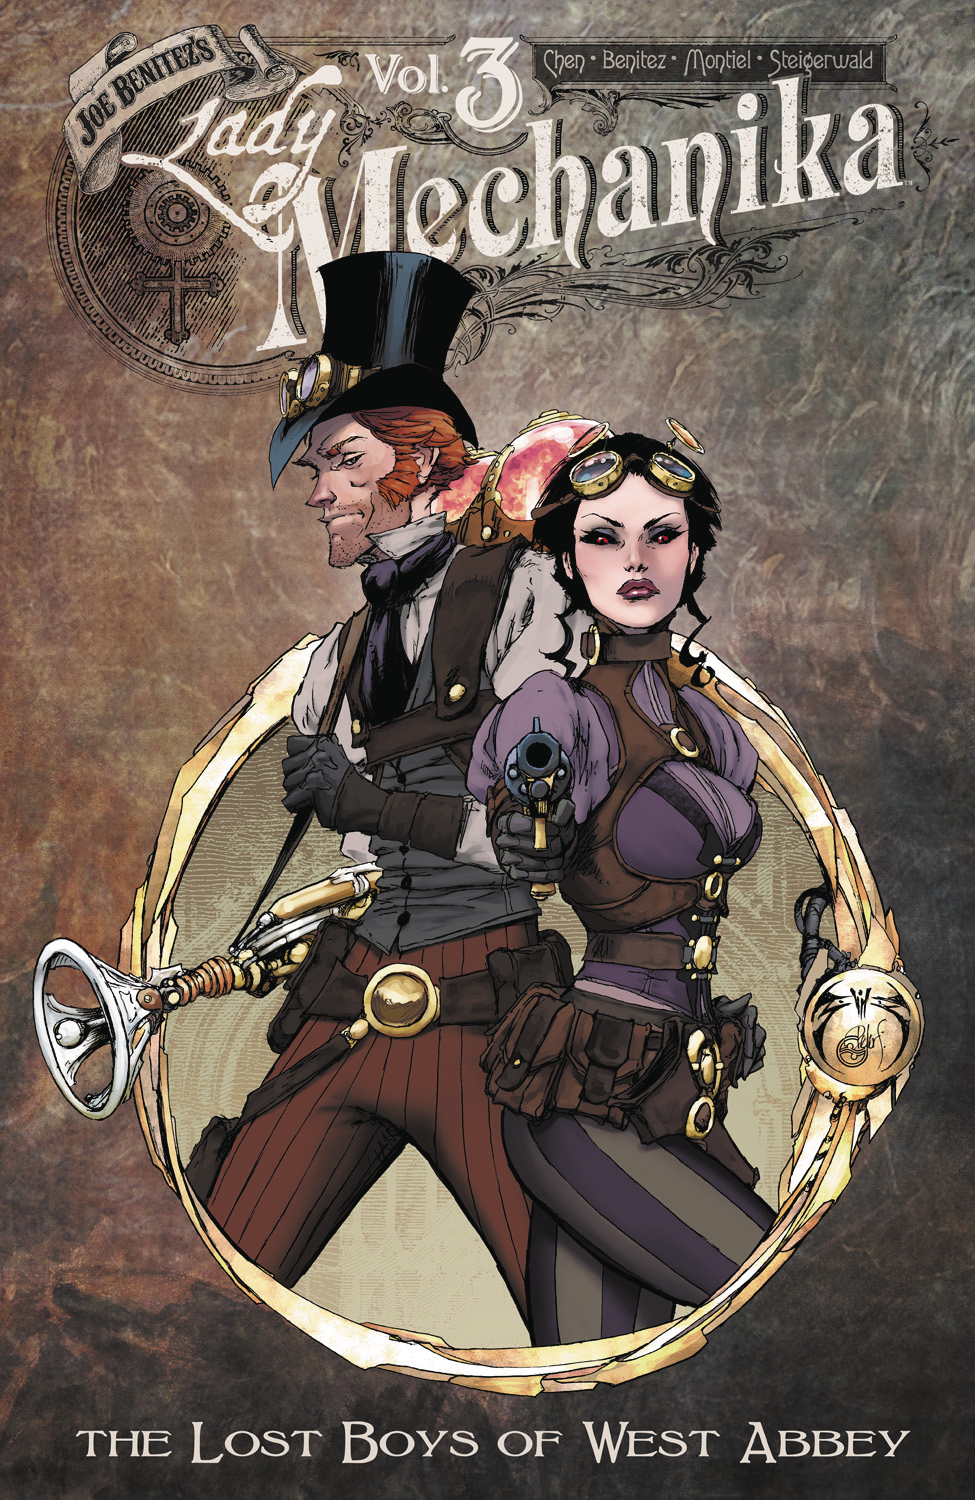 LADY MECHANIKA TP VOL 03 LOST BOYS OF WEST ABBEY